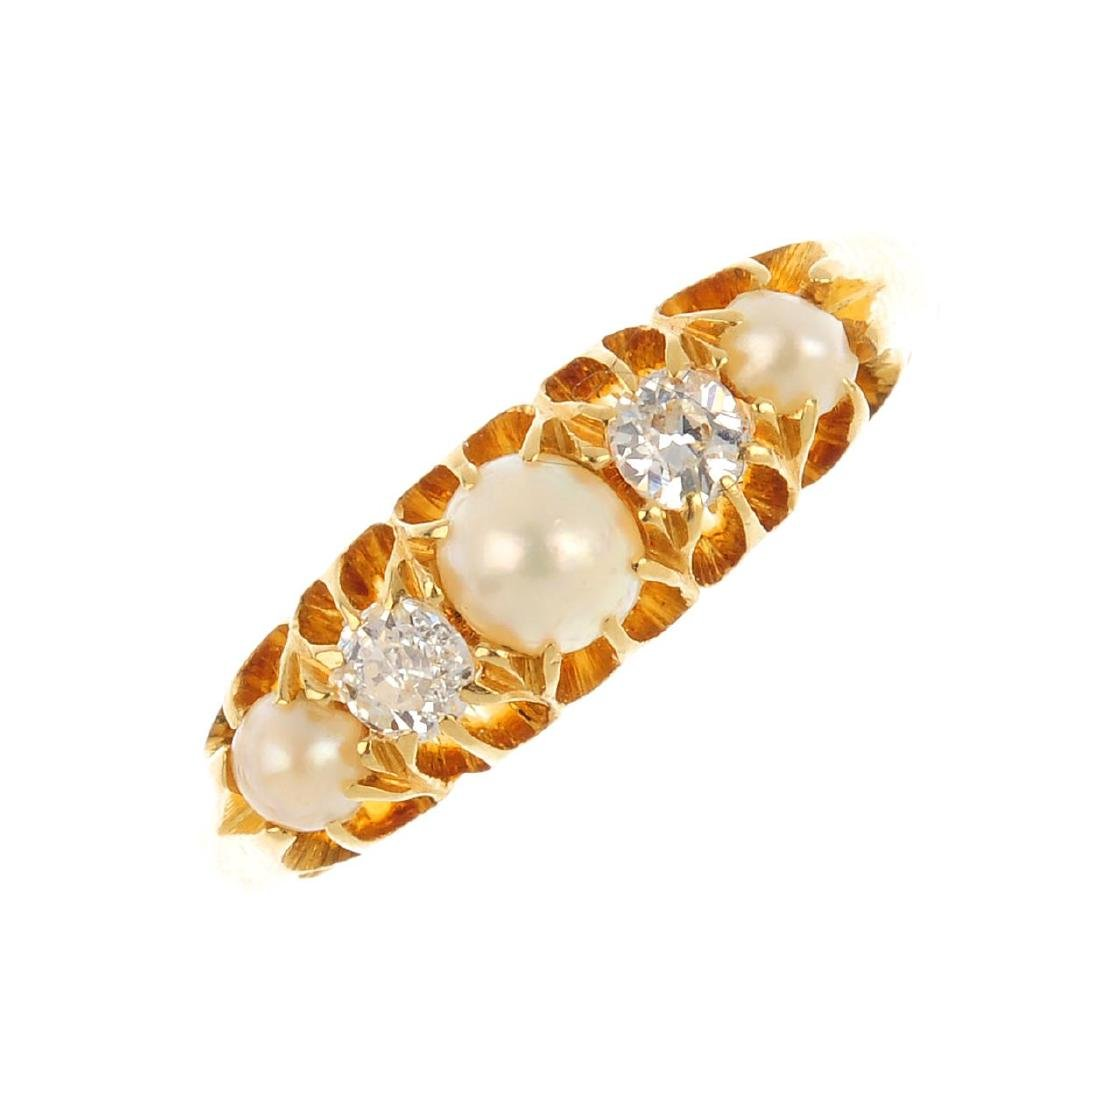 An early 20th century 18ct gold split pearl and diamond